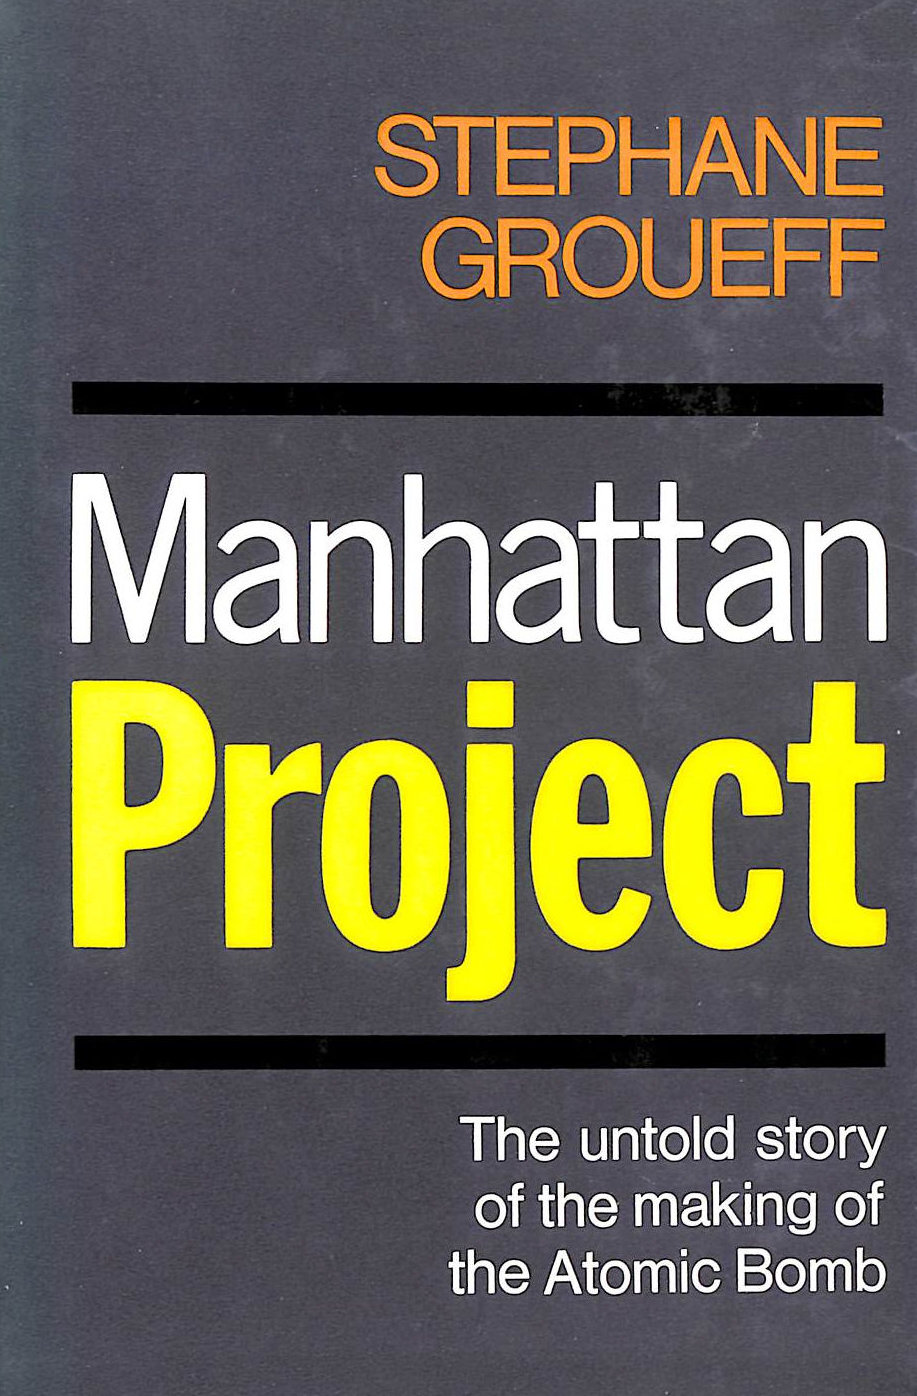 Image for Manhattan Project: The Untold Story Of The Making Of The Atomic Bomb